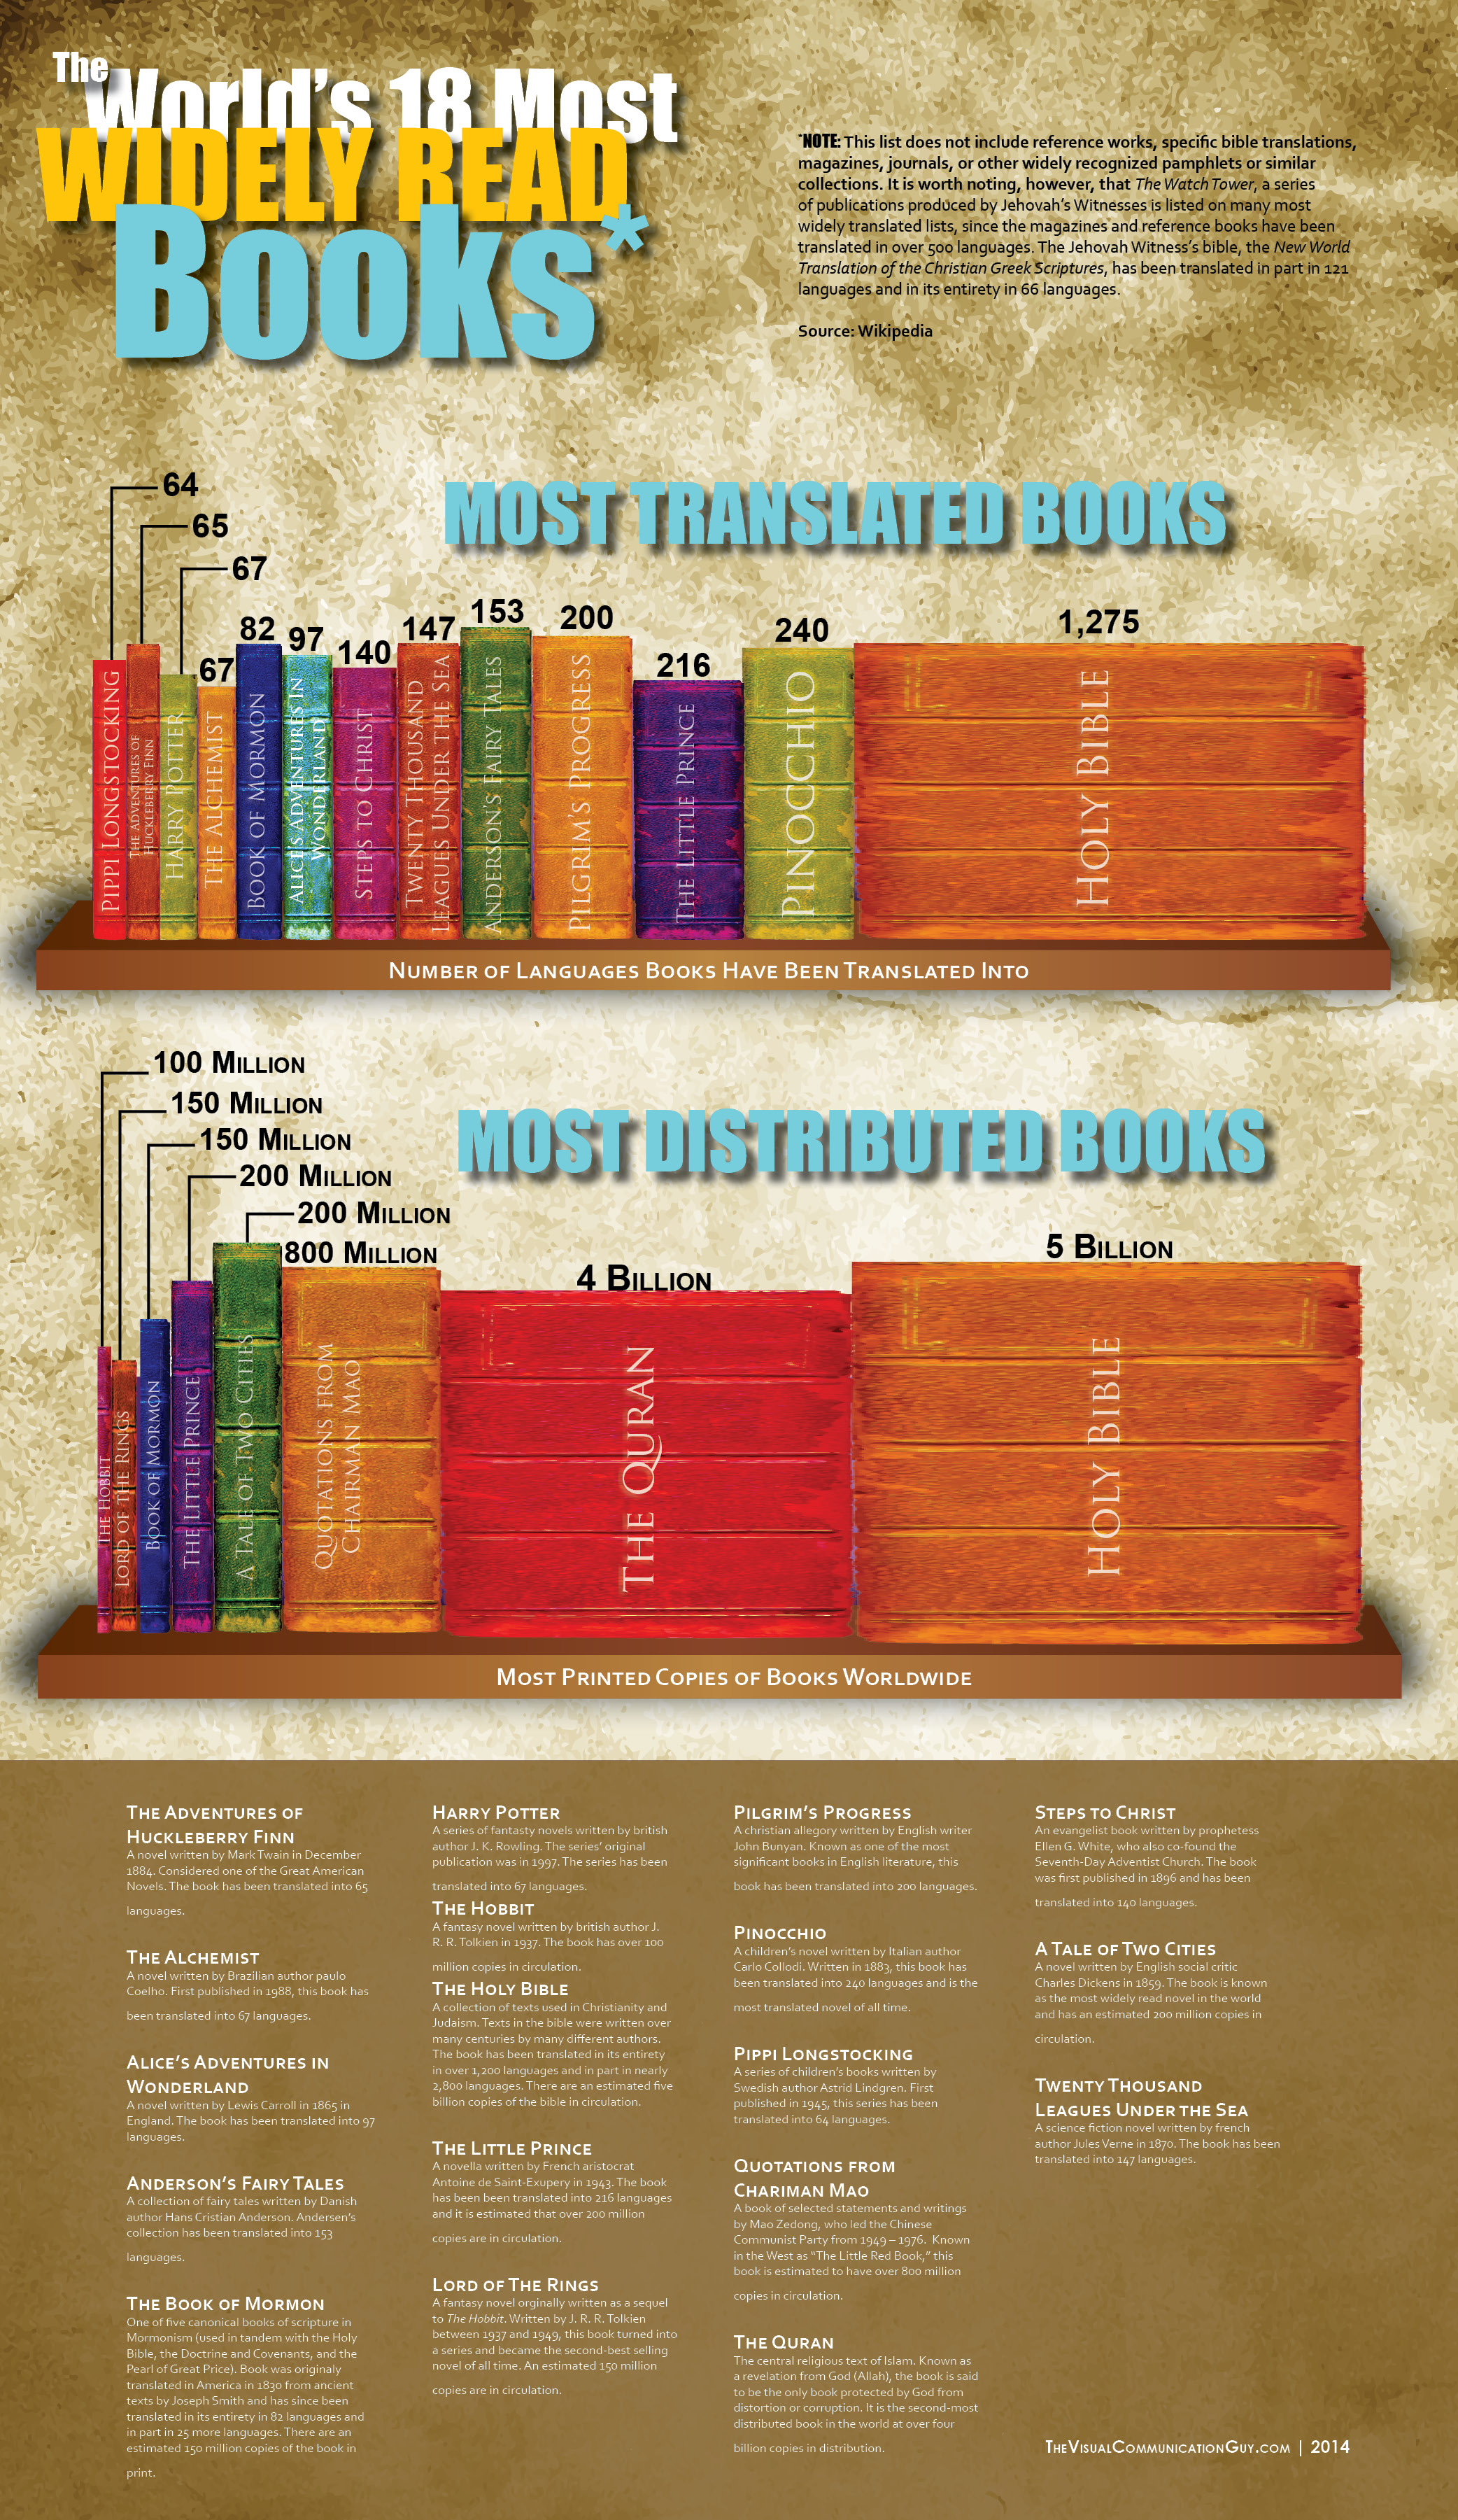 World's Most Widely Read Books